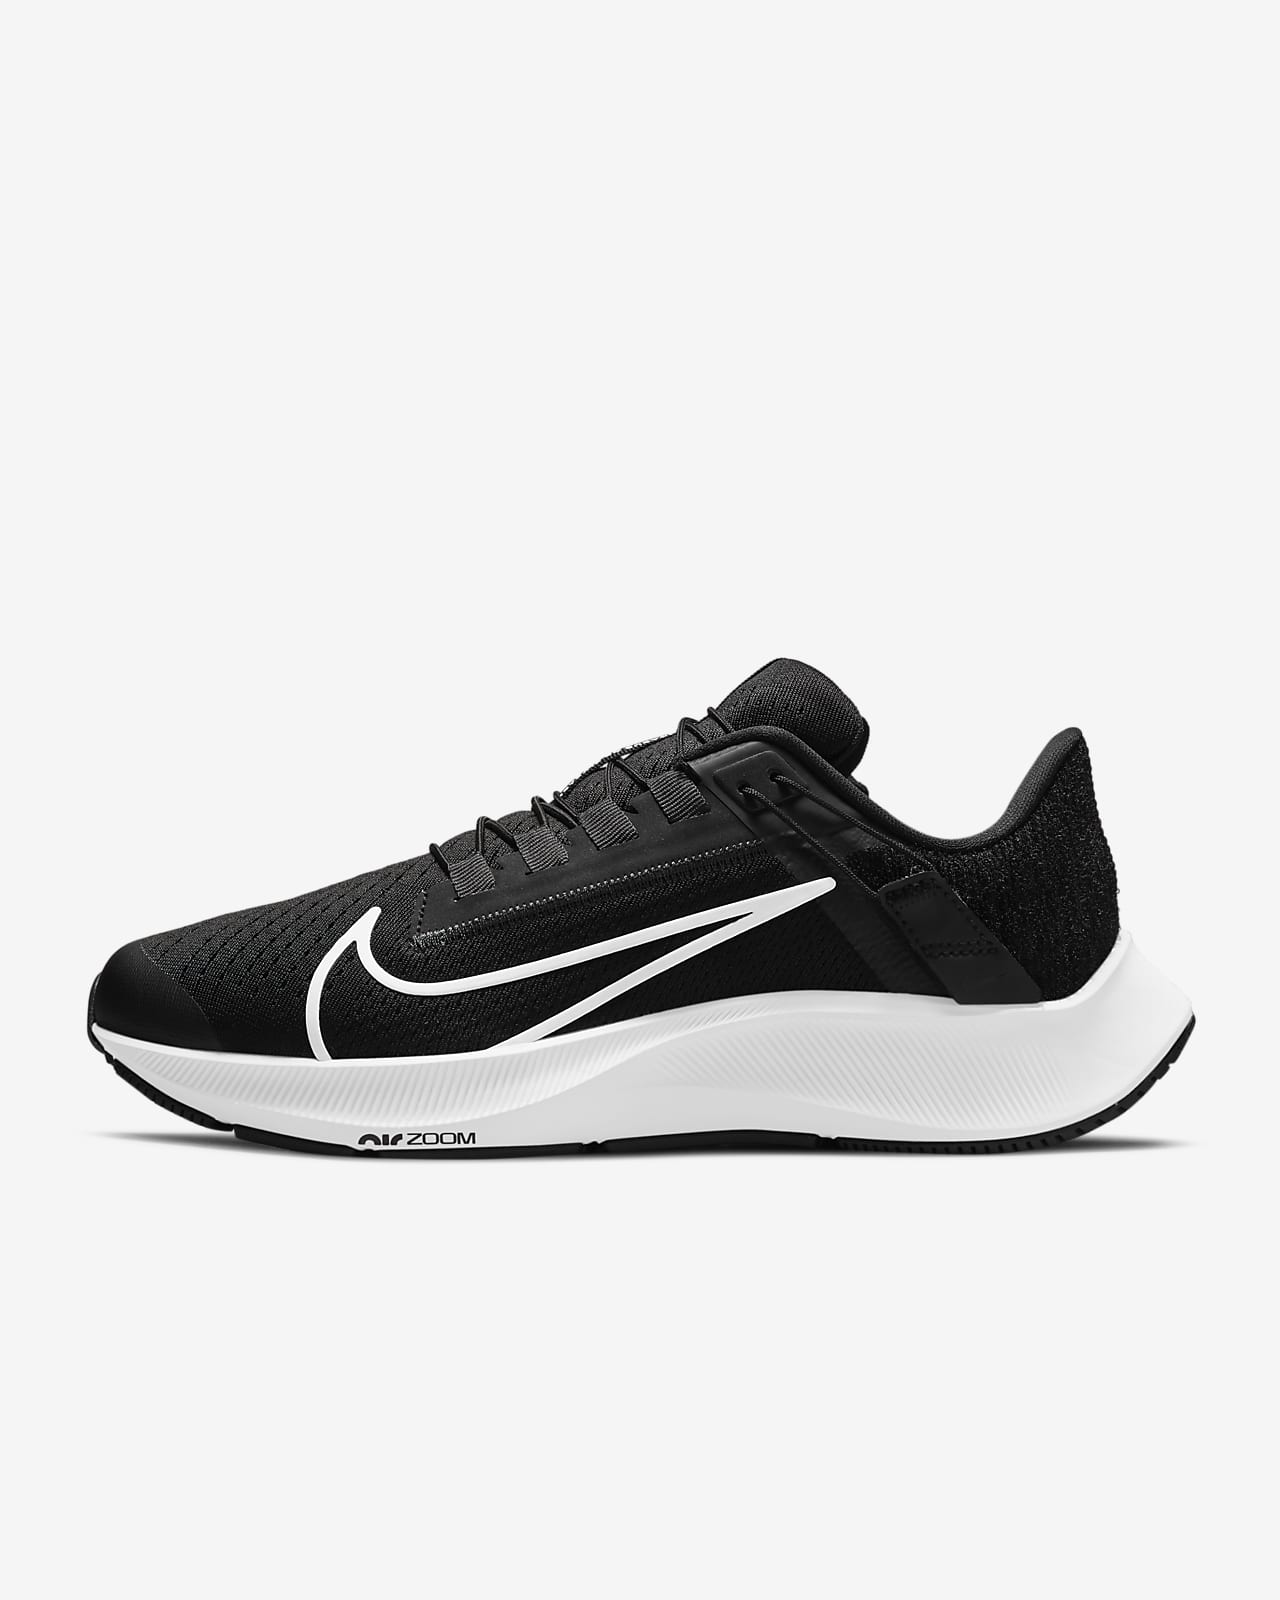 Nike Air Zoom Pegasus 38 FlyEase Women's Easy On/Off Road Running Shoes (Wide)